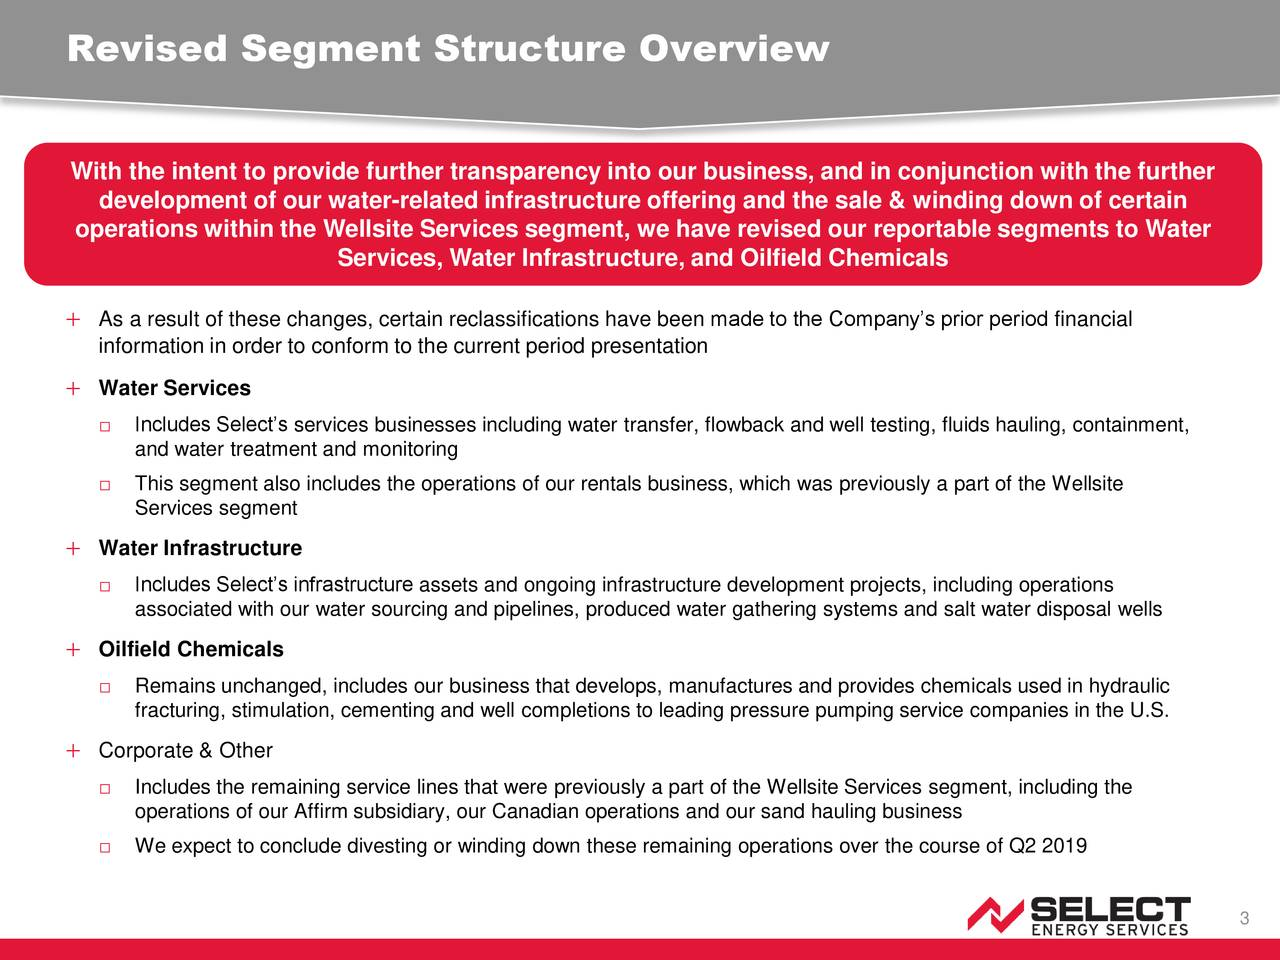 With the intent to provide further transparency into our business, and in conjunction with the further development of our water-related infrastructure offering and the sale & winding down of certain operations within the Wellsite Services segment, we have revised our reportable segments to Water Services, Water Infrastructure, and Oilfield Chemicals  As a result of these changes, certain reclassifications have been made to the Company's prior period financial information in order to conform to the current period presentation  Water Services □ Includes Select's services businesses including water transfer, flowback and well testing, fluids hauling, containment, and water treatment and monitoring □ This segment also includes the operations of our rentals business, which was previously a part of the Wellsite Services segment  Water Infrastructure □ Includes Select's infrastructure assets and ongoing infrastructure development projects, including operations associated with our water sourcing and pipelines, produced water gathering systems and salt water disposal wells  Oilfield Chemicals □ Remains unchanged, includes our business that develops, manufactures and provides chemicals used in hydraulic fracturing, stimulation, cementing and well completions to leading pressure pumping service companies in the U.S.  Corporate & Other □ Includes the remaining service lines that were previously a part of the Wellsite Services segment, including the operations of our Affirm subsidiary, our Canadian operations and our sand hauling business □ We expect to conclude divesting or winding down these remaining operations over the course of Q2 2019 3